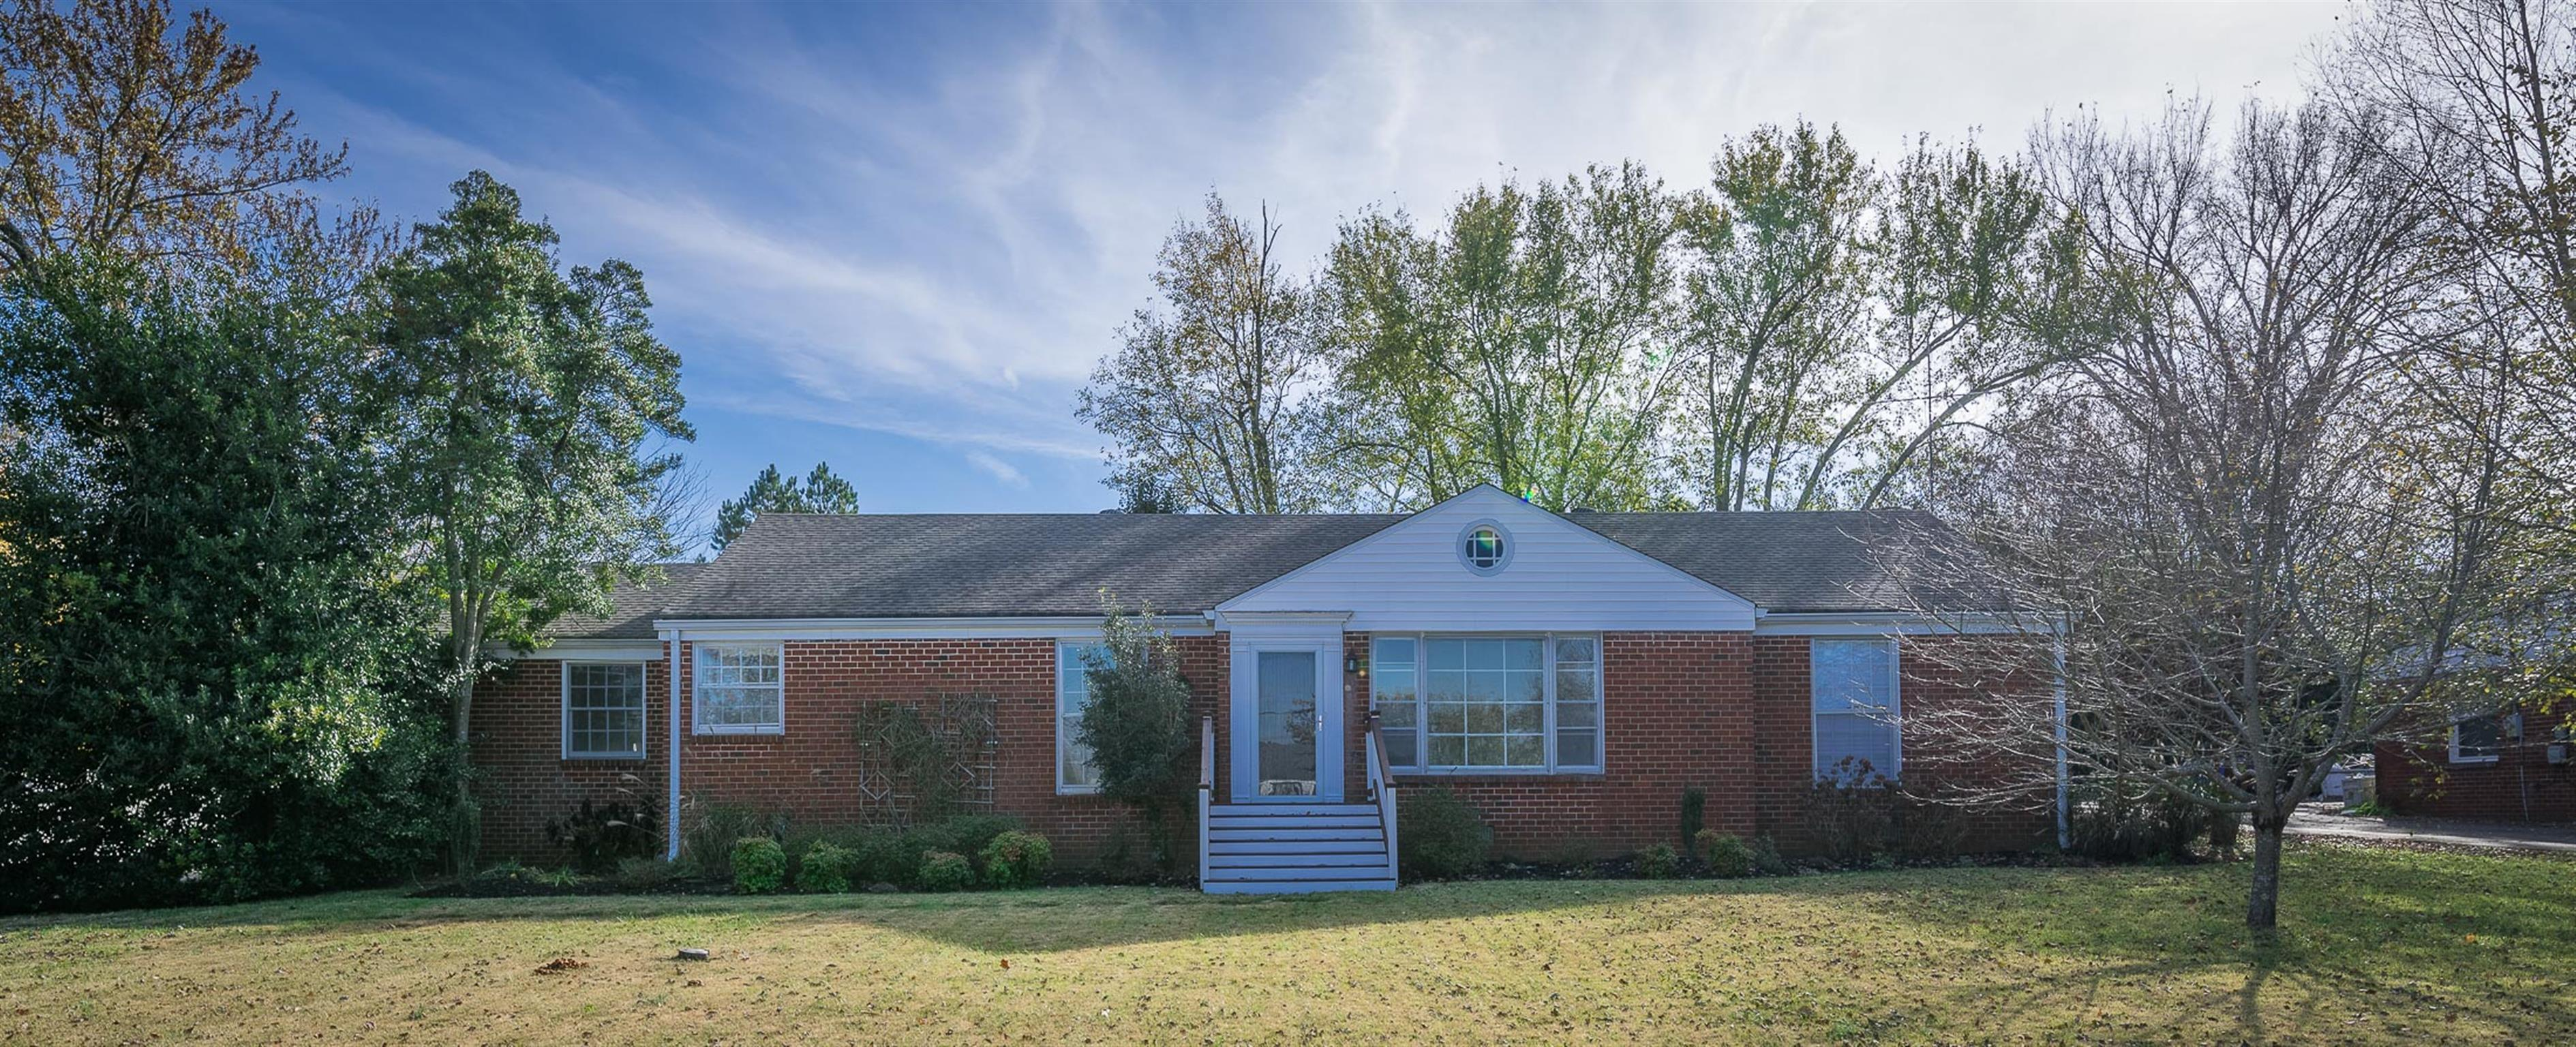 234 W End Hts, Lebanon in Wilson County County, TN 37087 Home for Sale